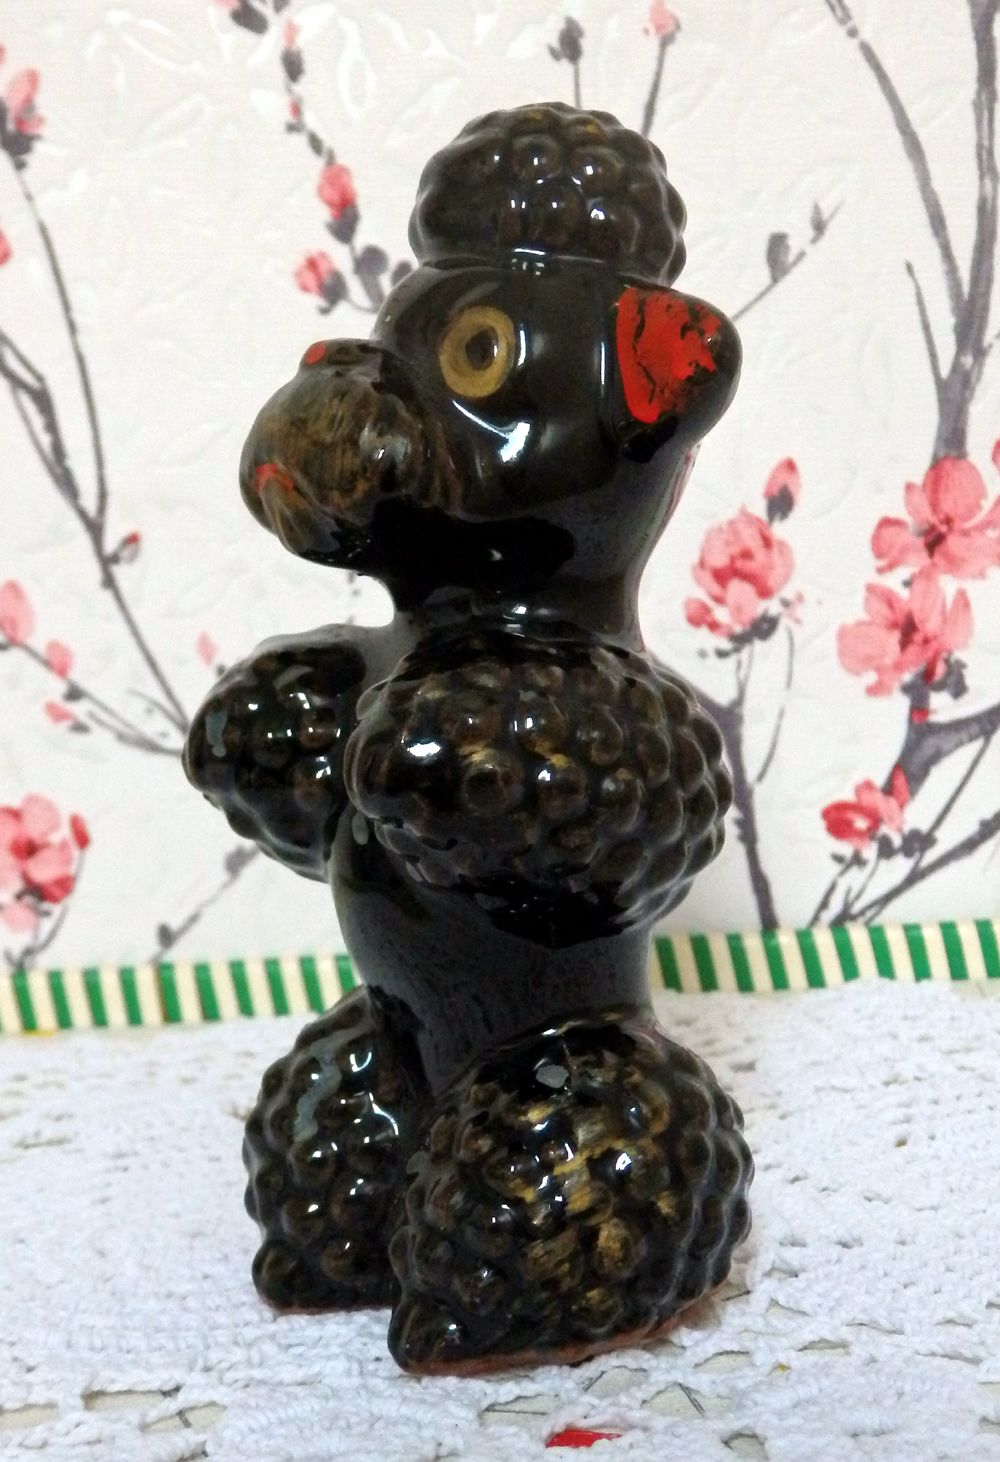 Redware Pottery hand painted Black Poodle figurine